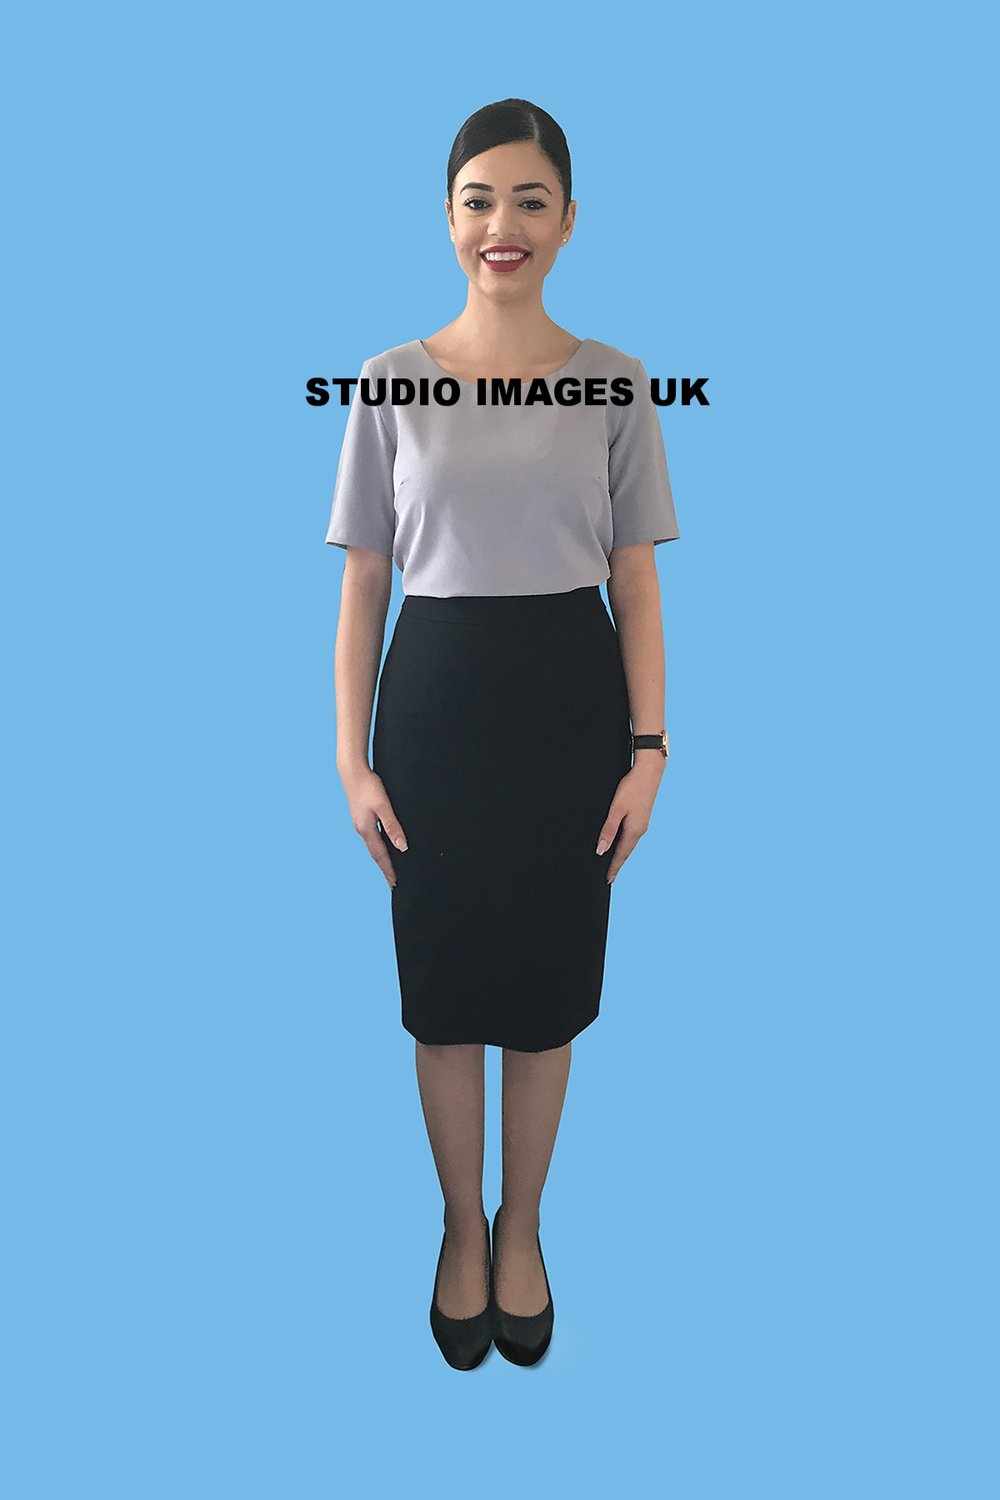 cv writing  interview training  u0026 photo editing for cabin crew